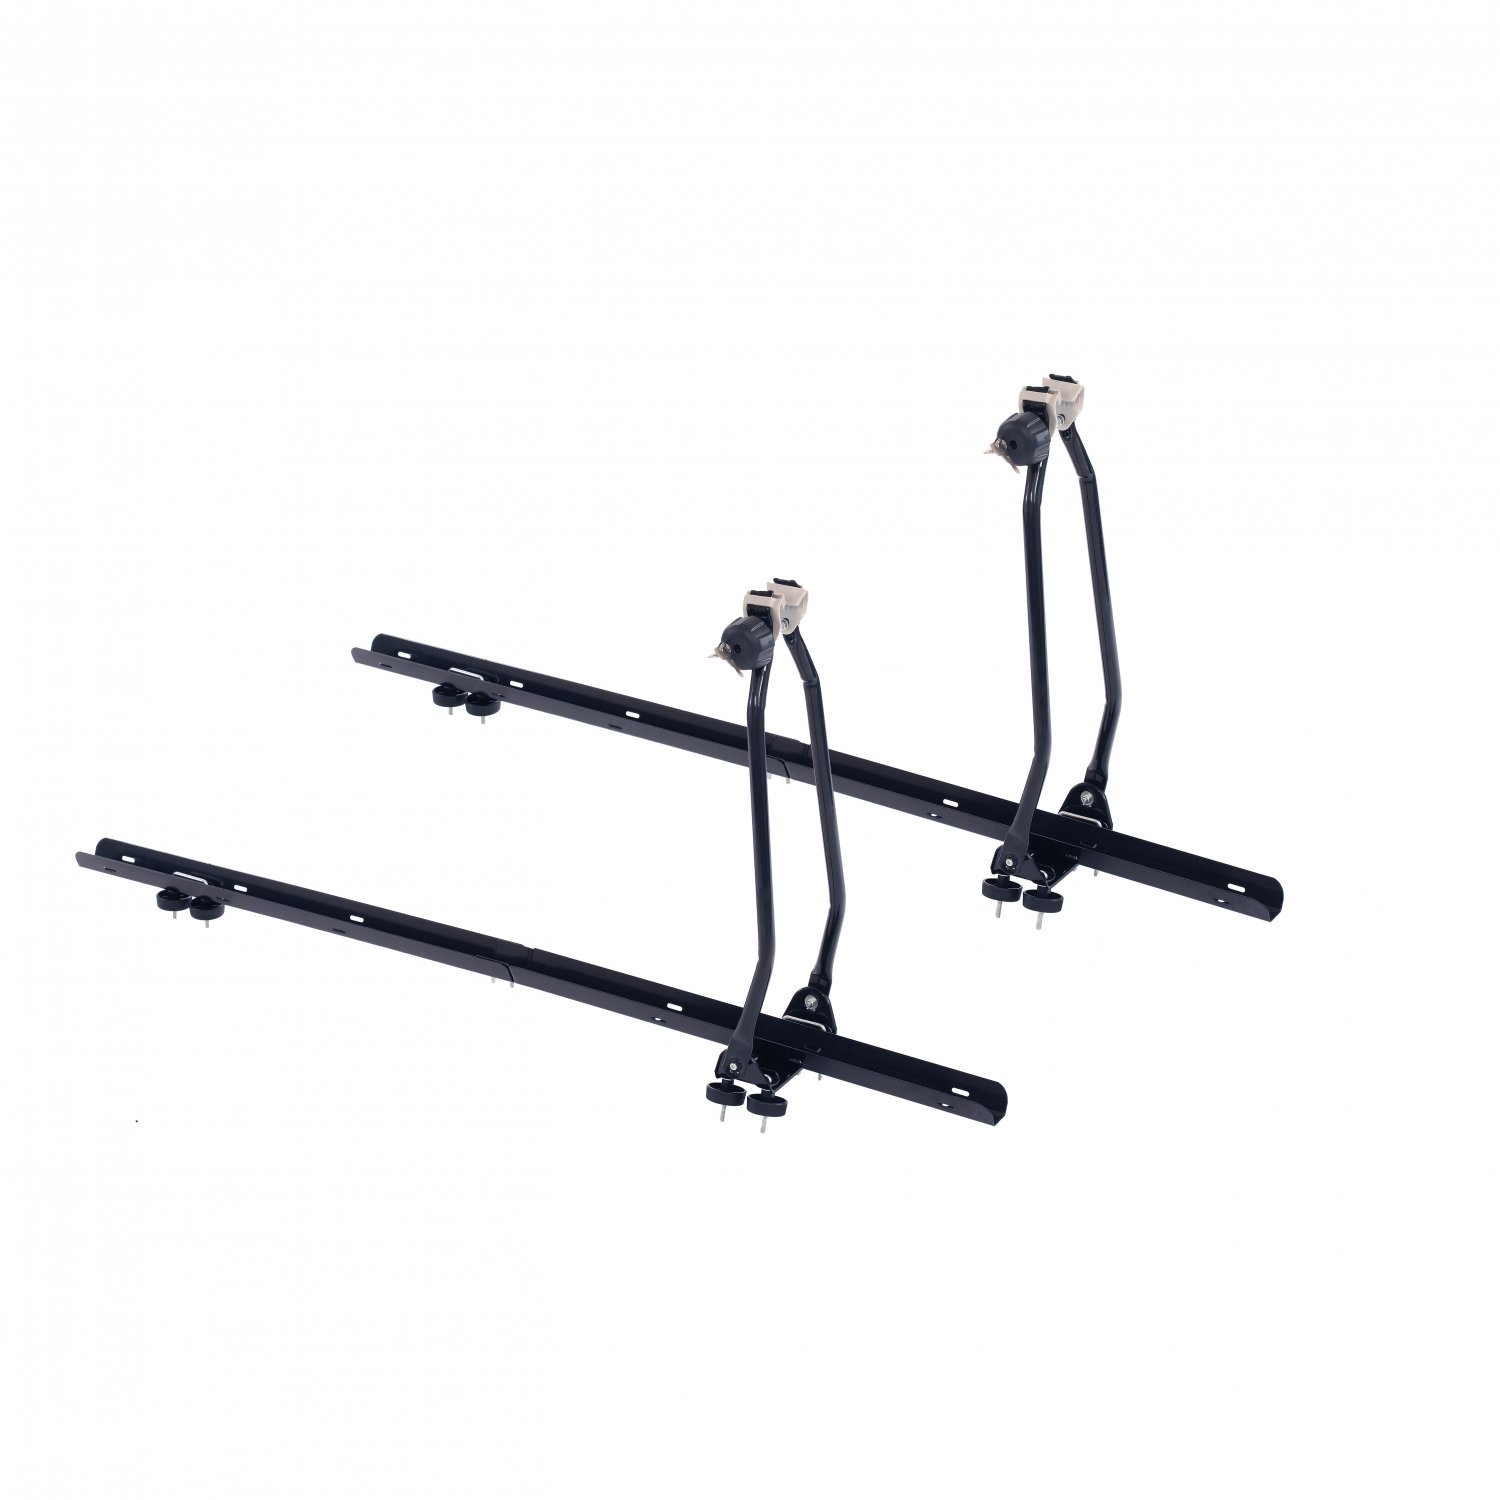 2x Universal Lockable Roof Mounted Bike Bicycle Rack Carriers